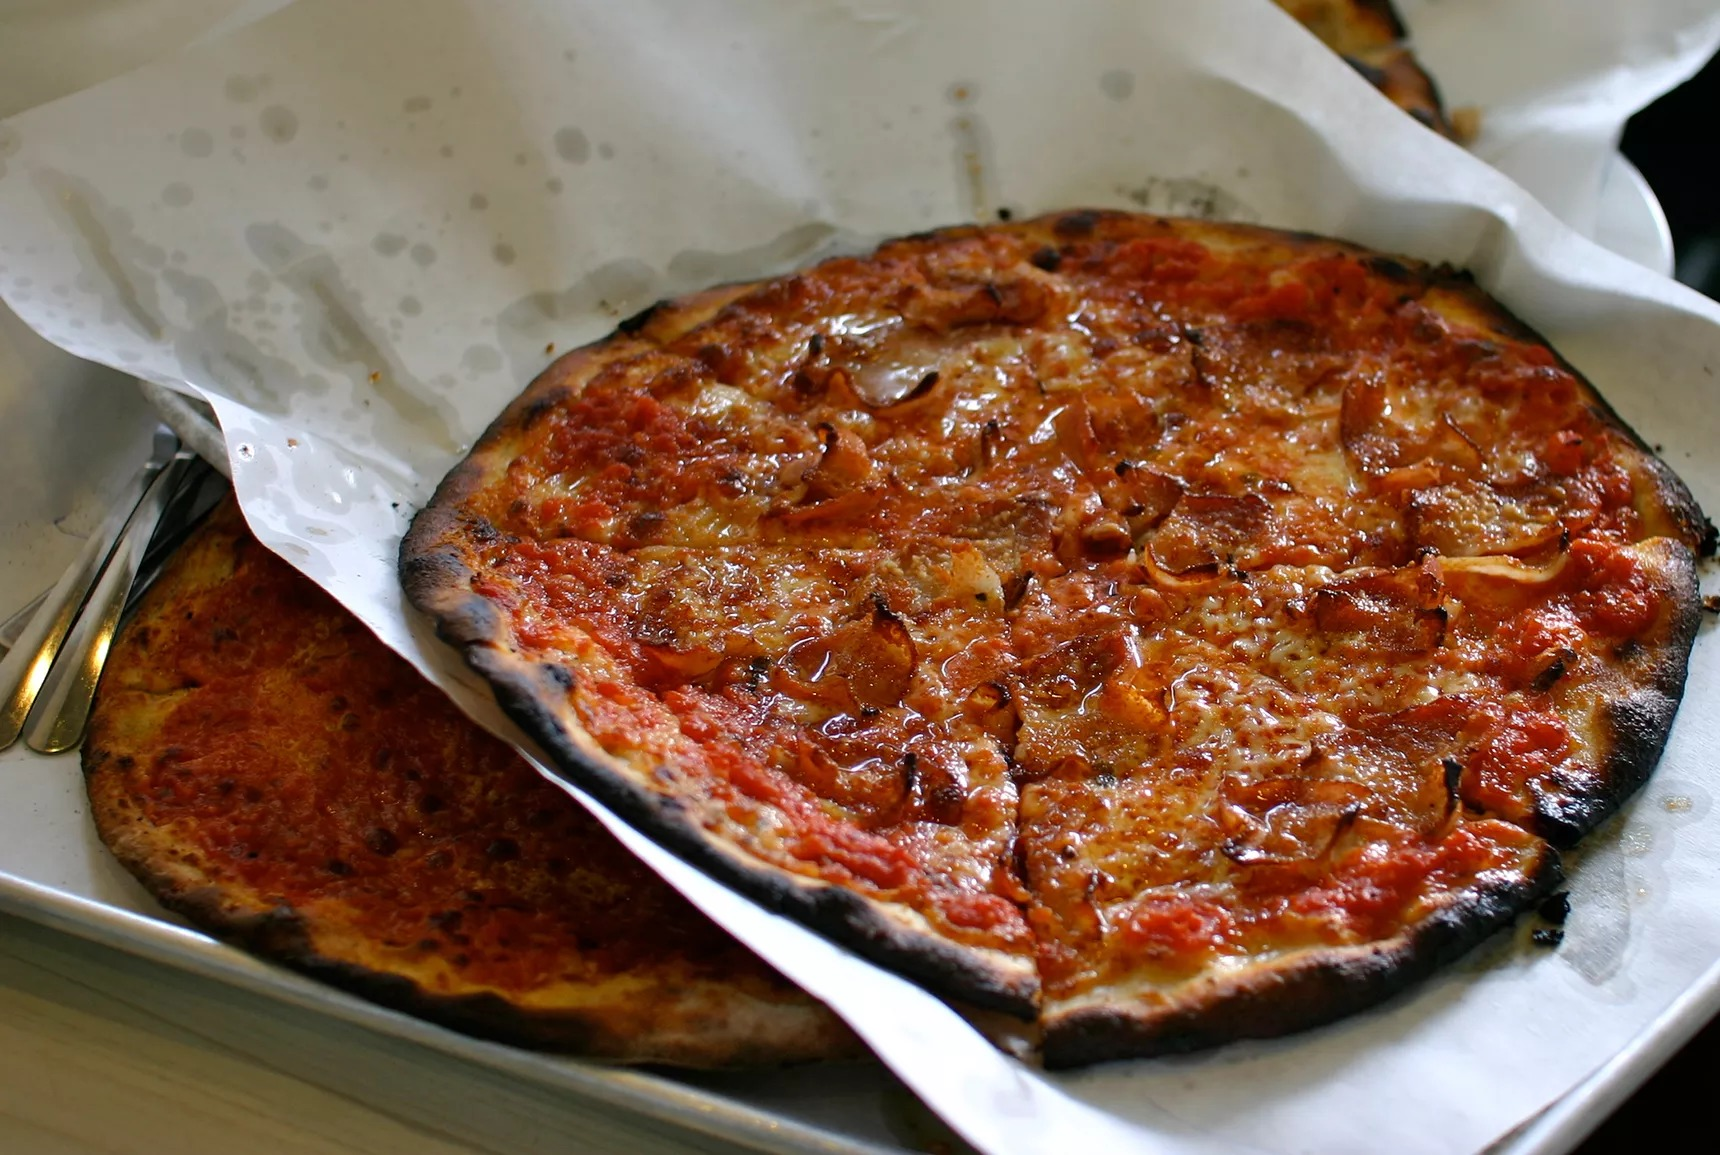 A coal-charred pepperoni pie from Frank Pepe